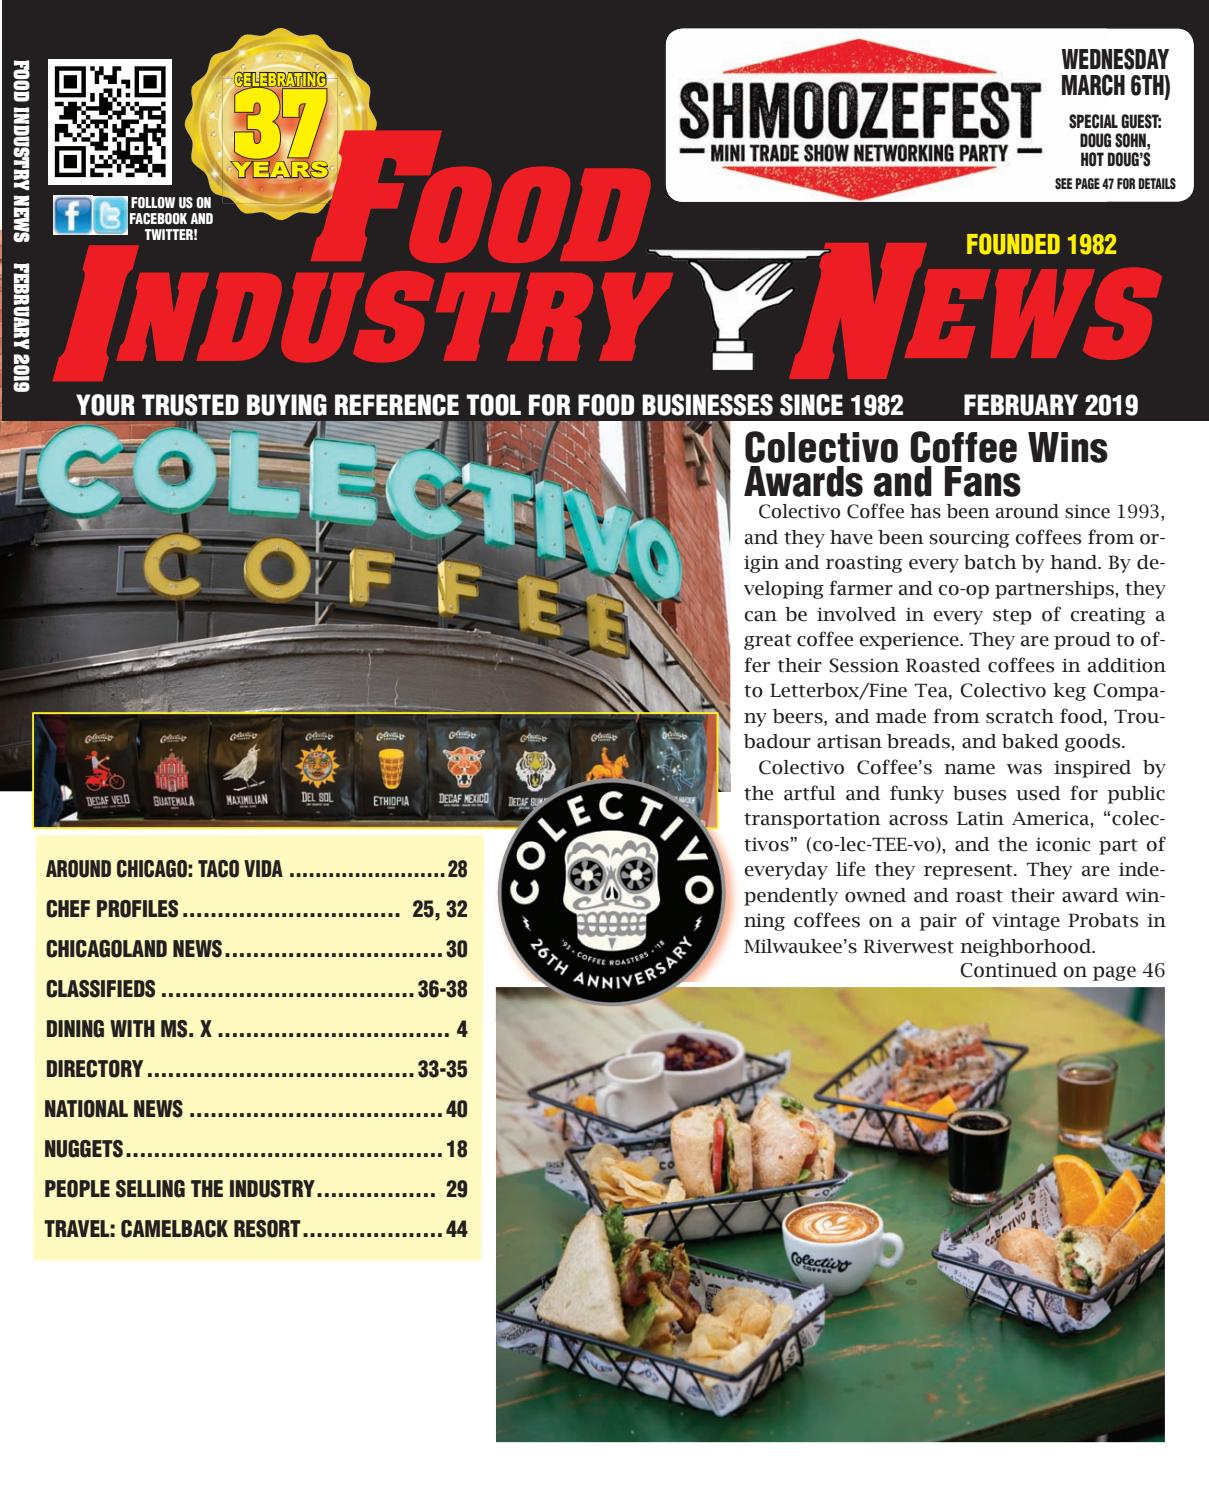 News Industry 2019 February Web Food Edition wkiuZPOXT